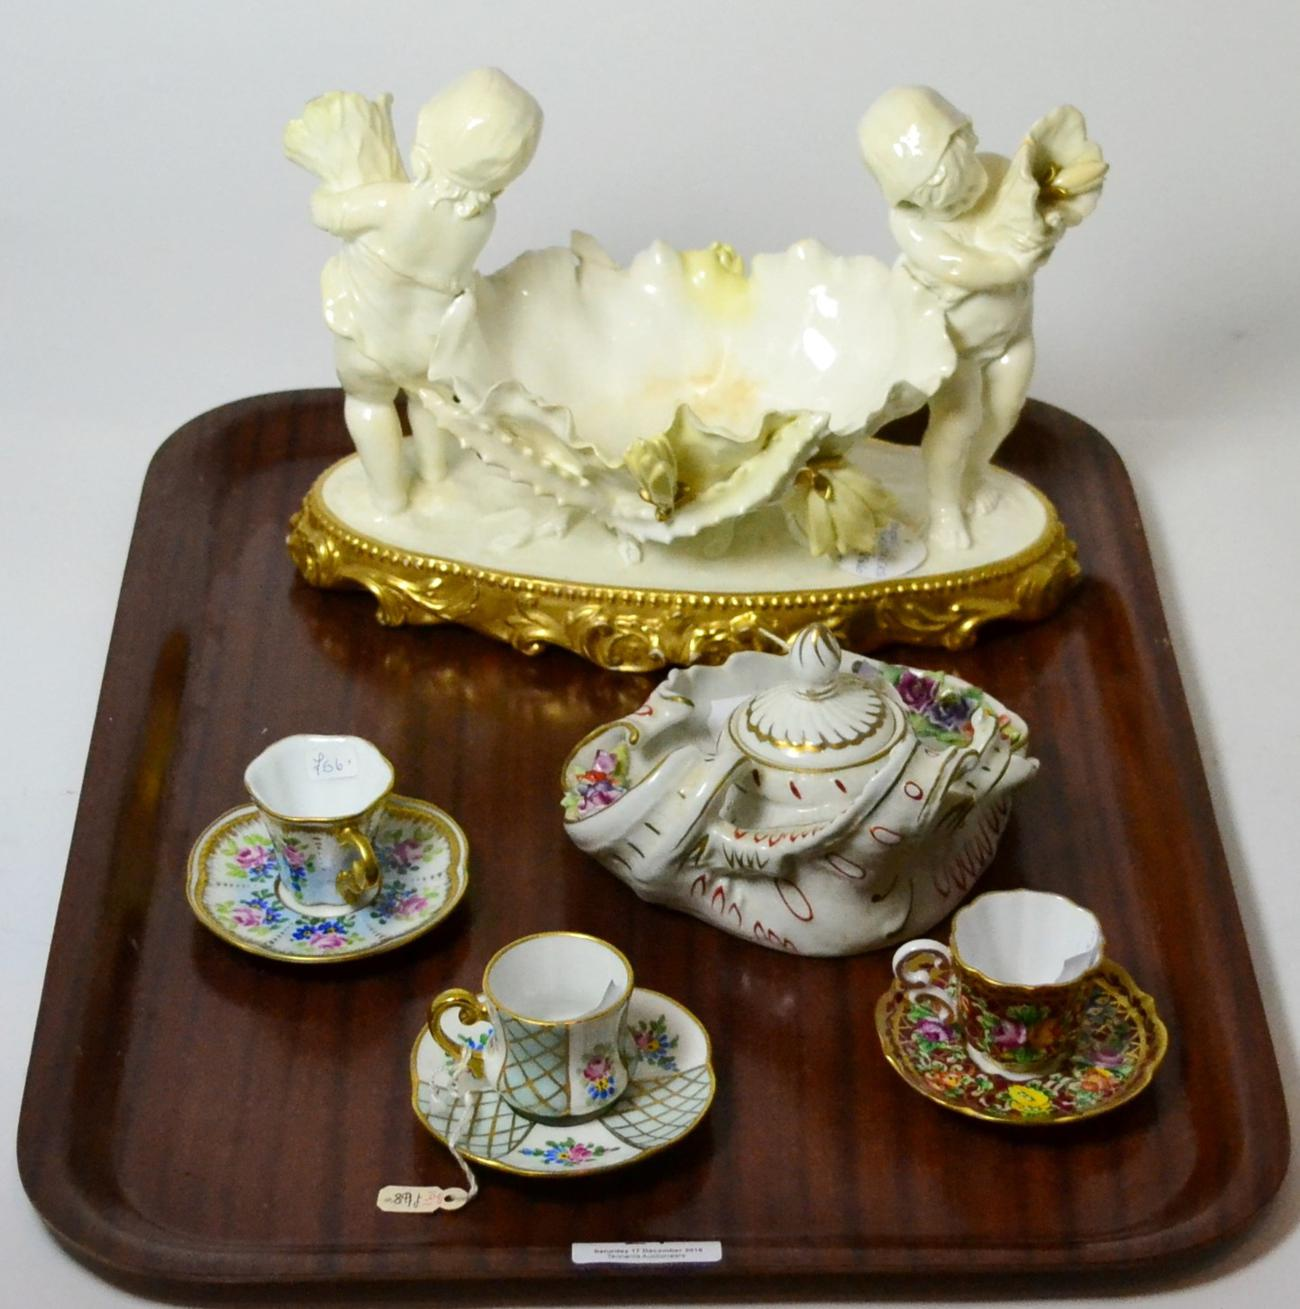 Tennants Auctioneers: A Moore Brothers figural cherub and shell dish